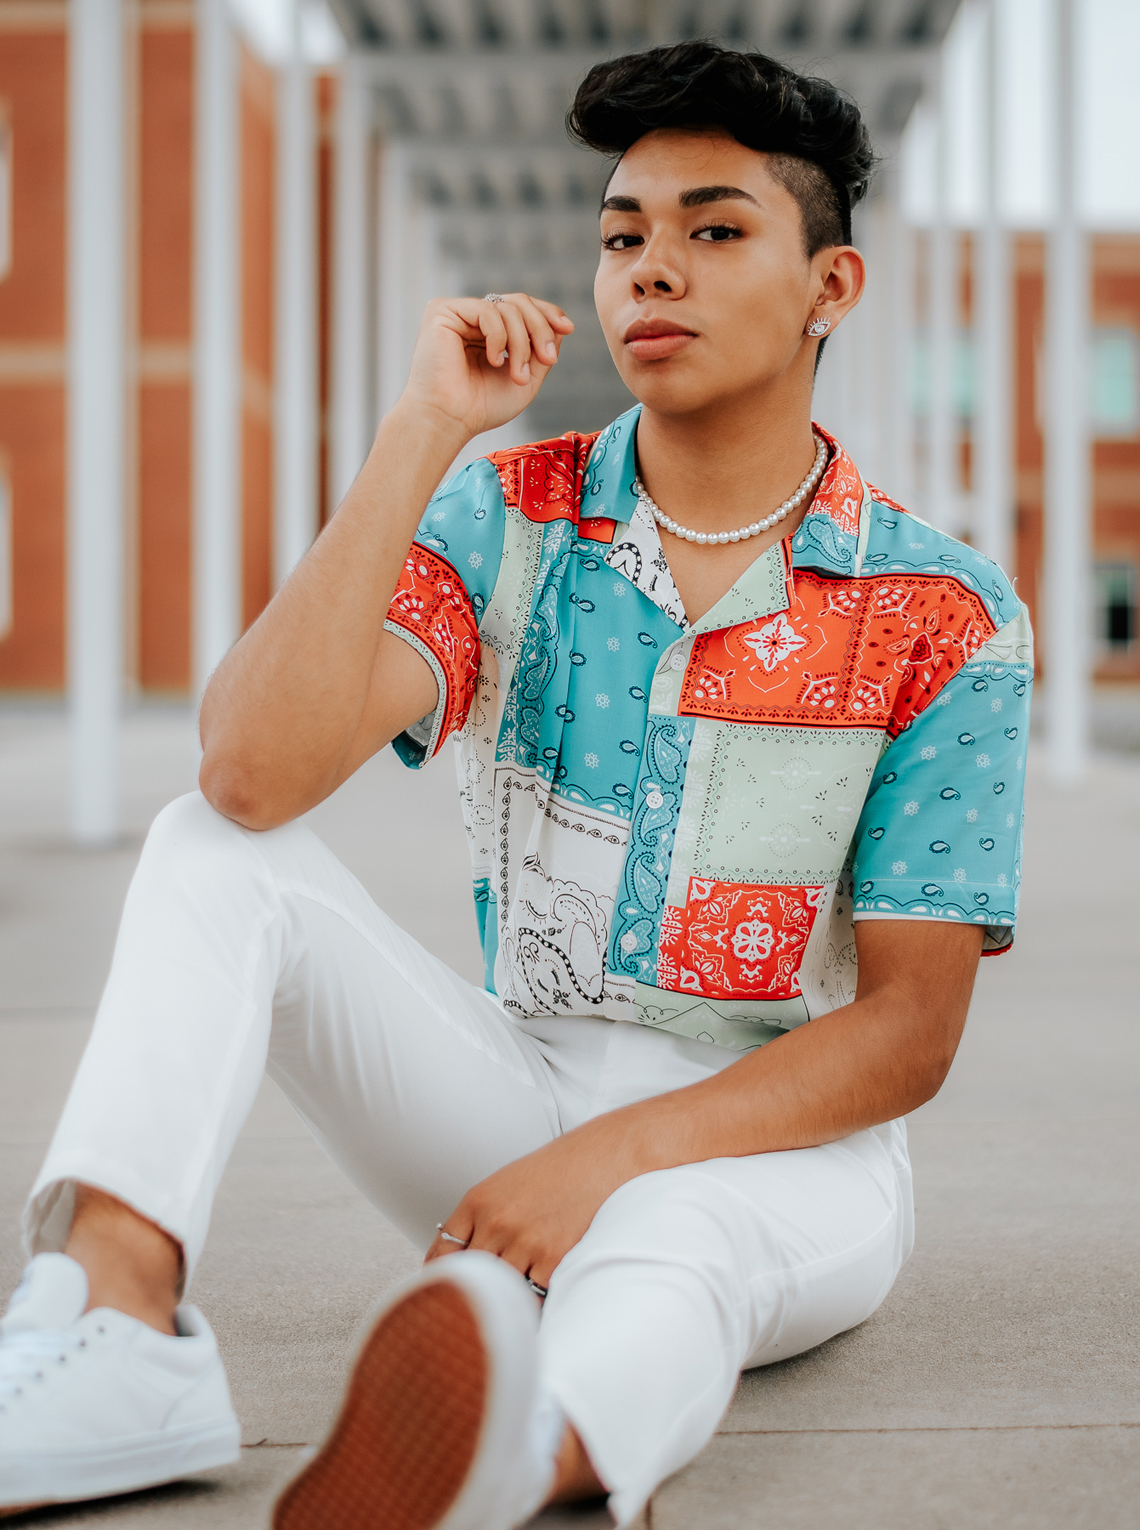 Isaac Peña served as the media captain at Easley for the 2020-21 school year